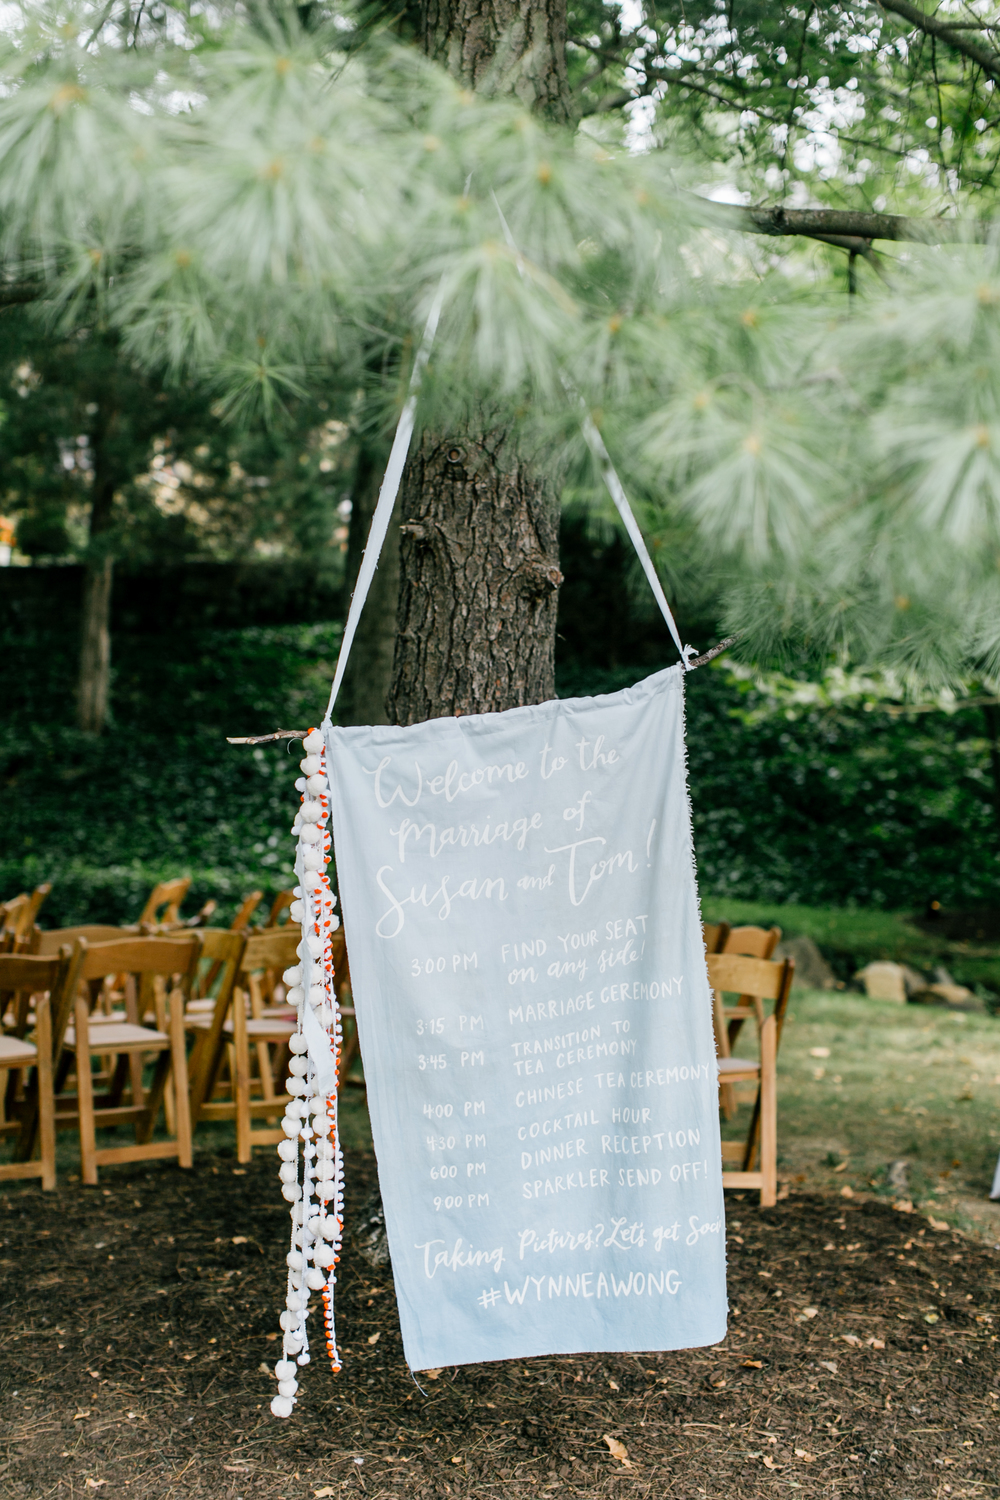 hand-dyed fabric ceremony program by hello, bird. // pom-pom tassels handcrafted by the bride + groom // photo by emily wren photography